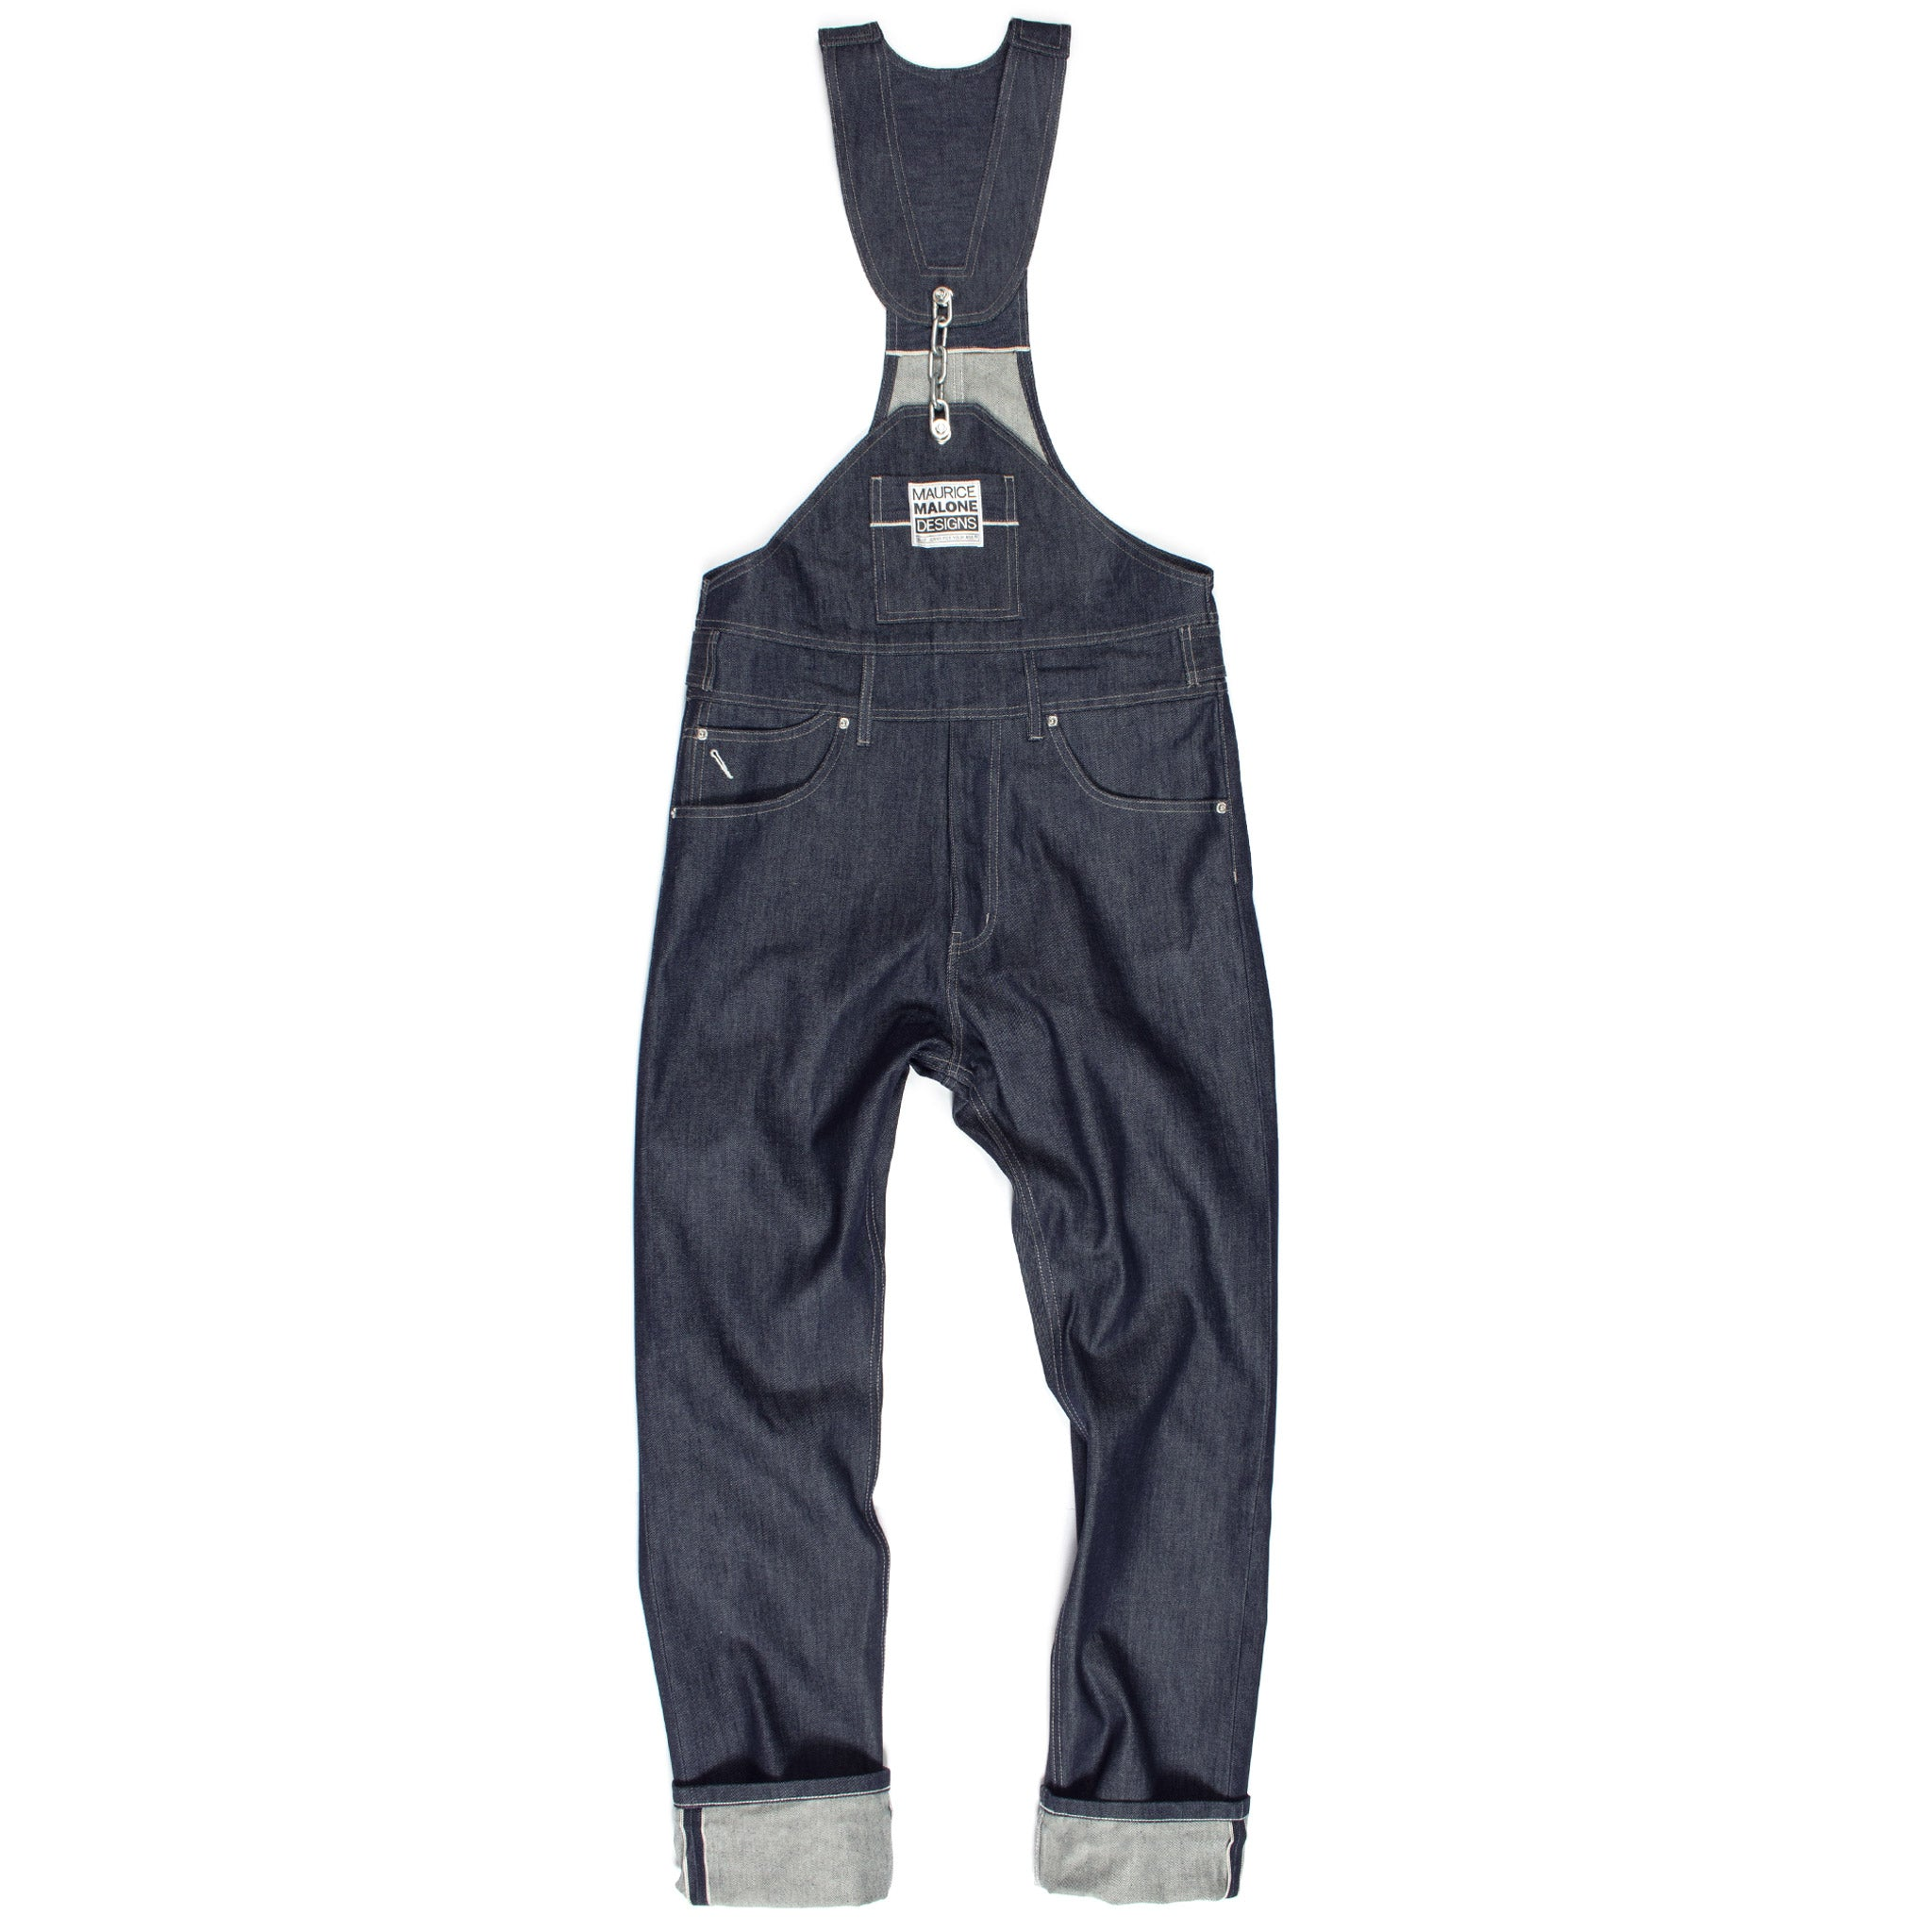 Maurice Malone chain-link selvedge raw denim overalls